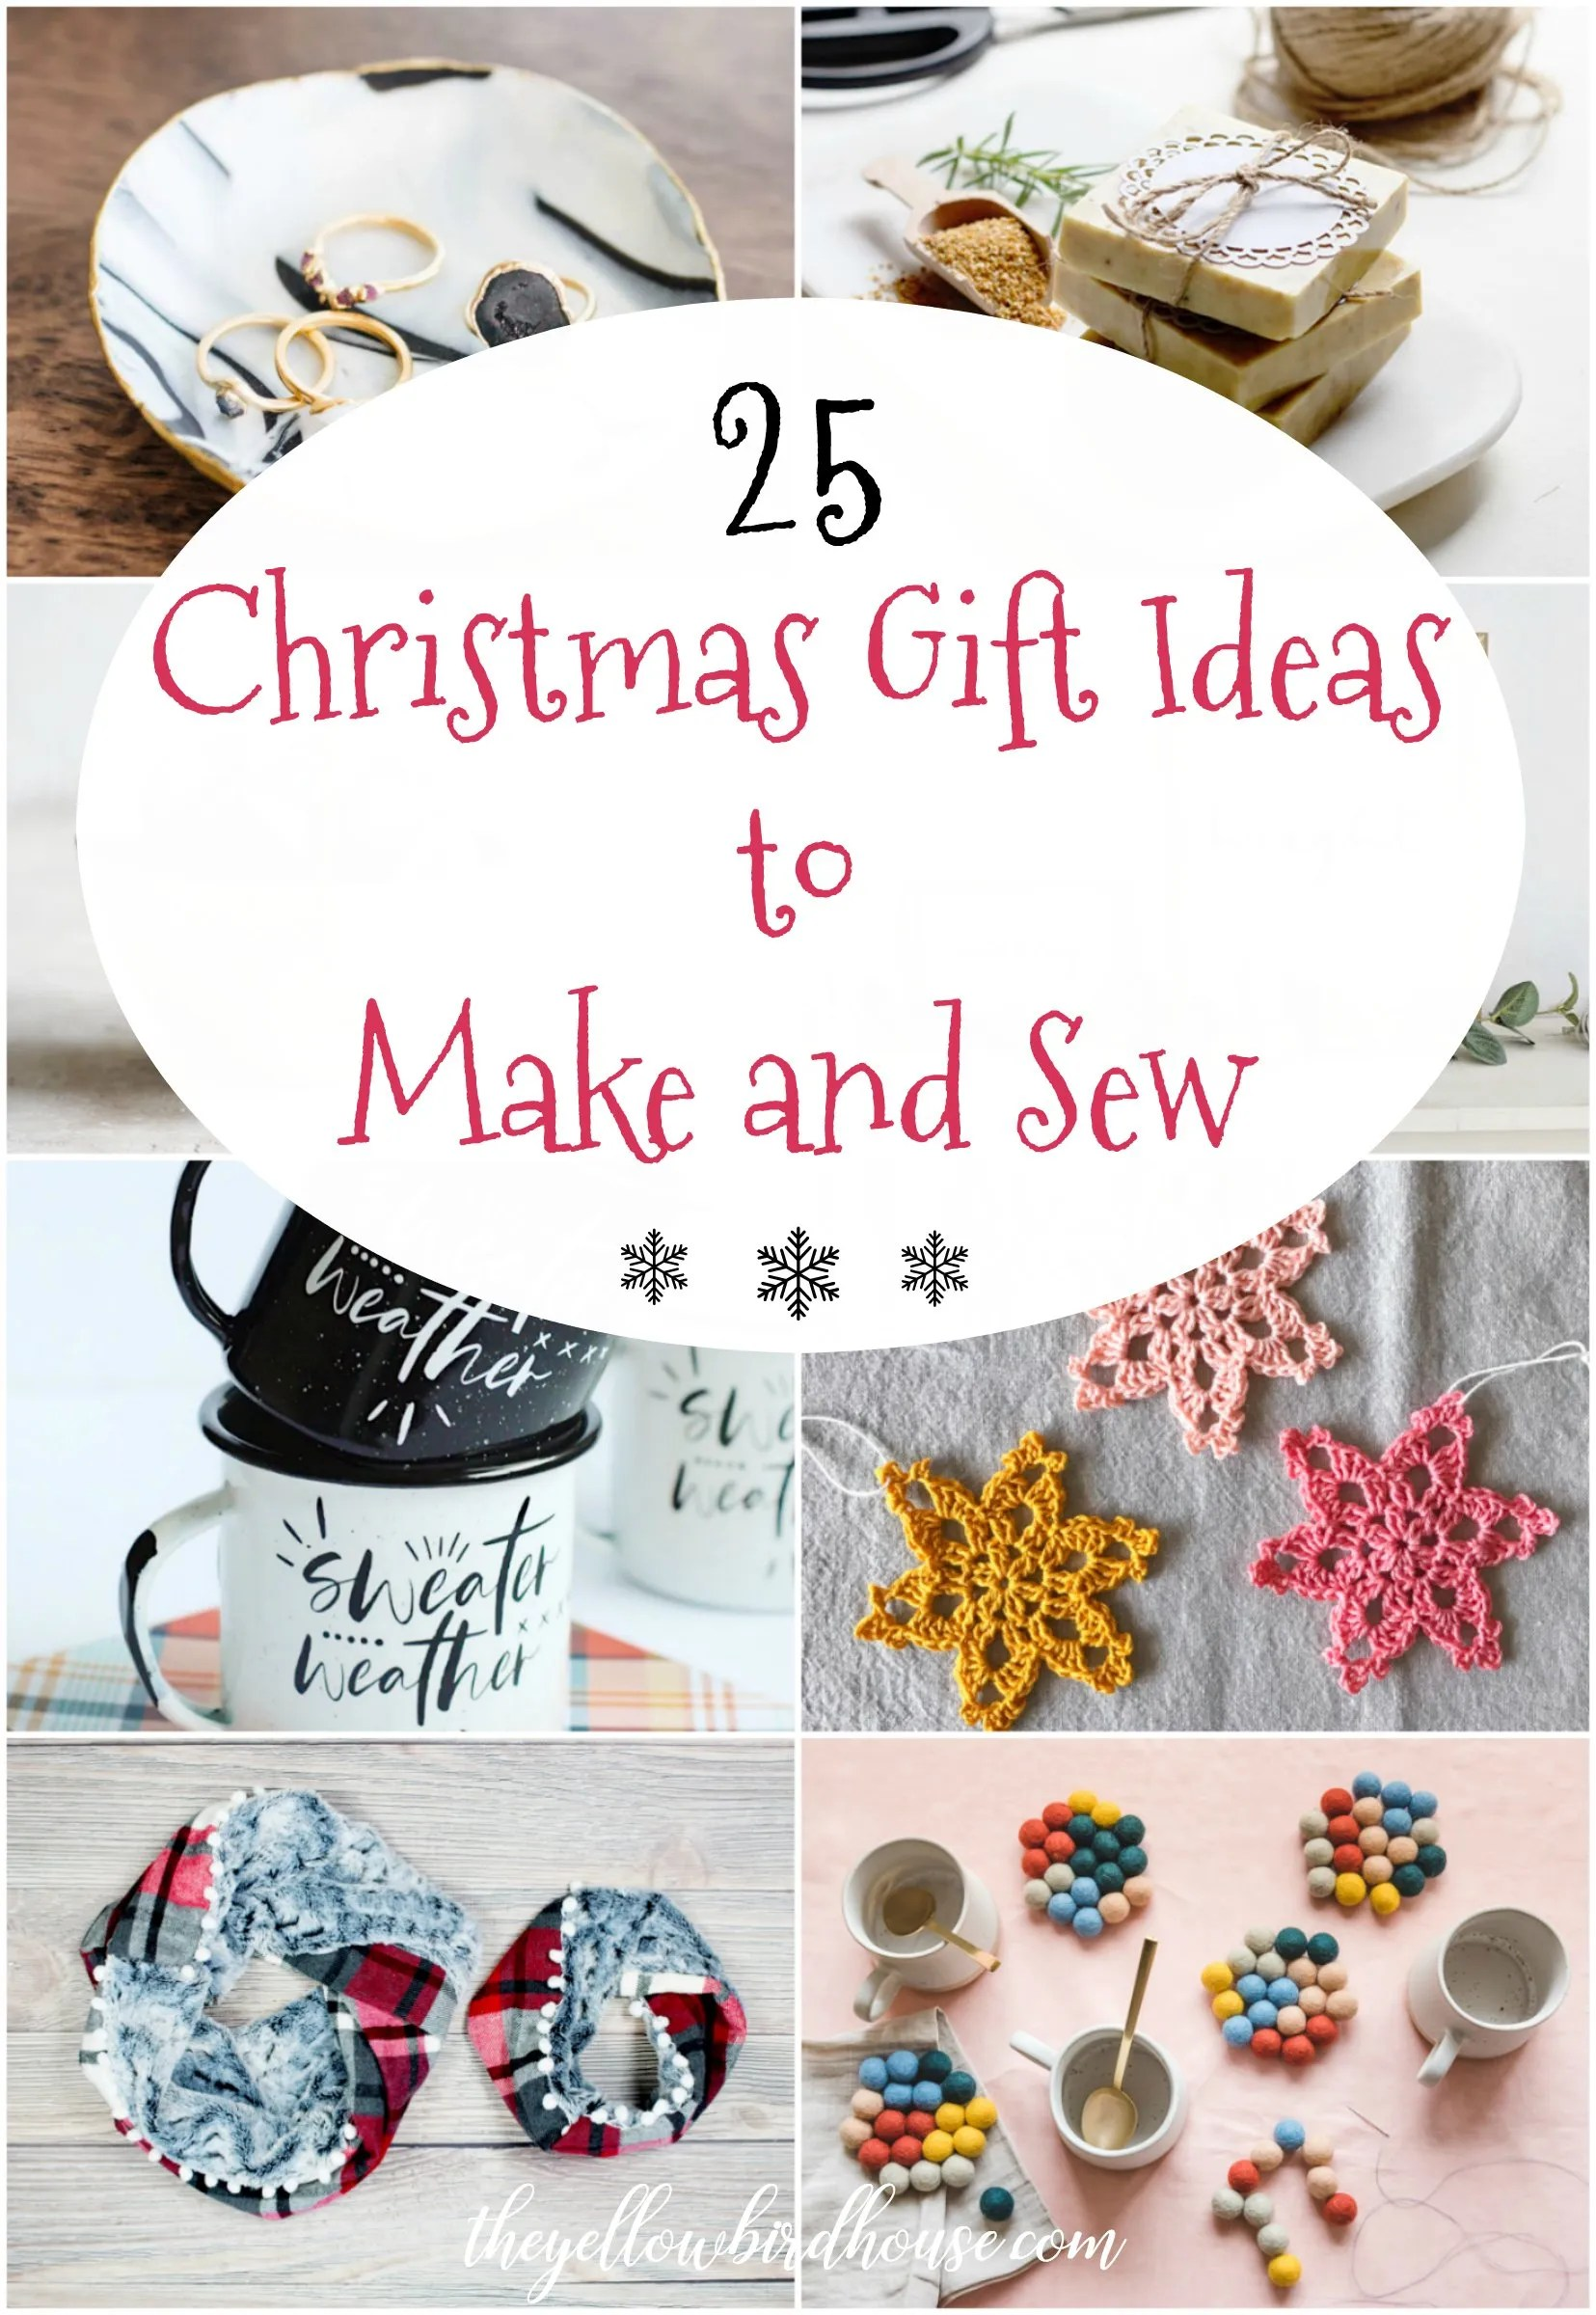 25 amazing tutorials and DIYs for handmade Christmas gifts. Treat your loved ones to extra special diy Christmas gifts this year. Cozy, cute and simple Christmas gift ideas to make and sew.